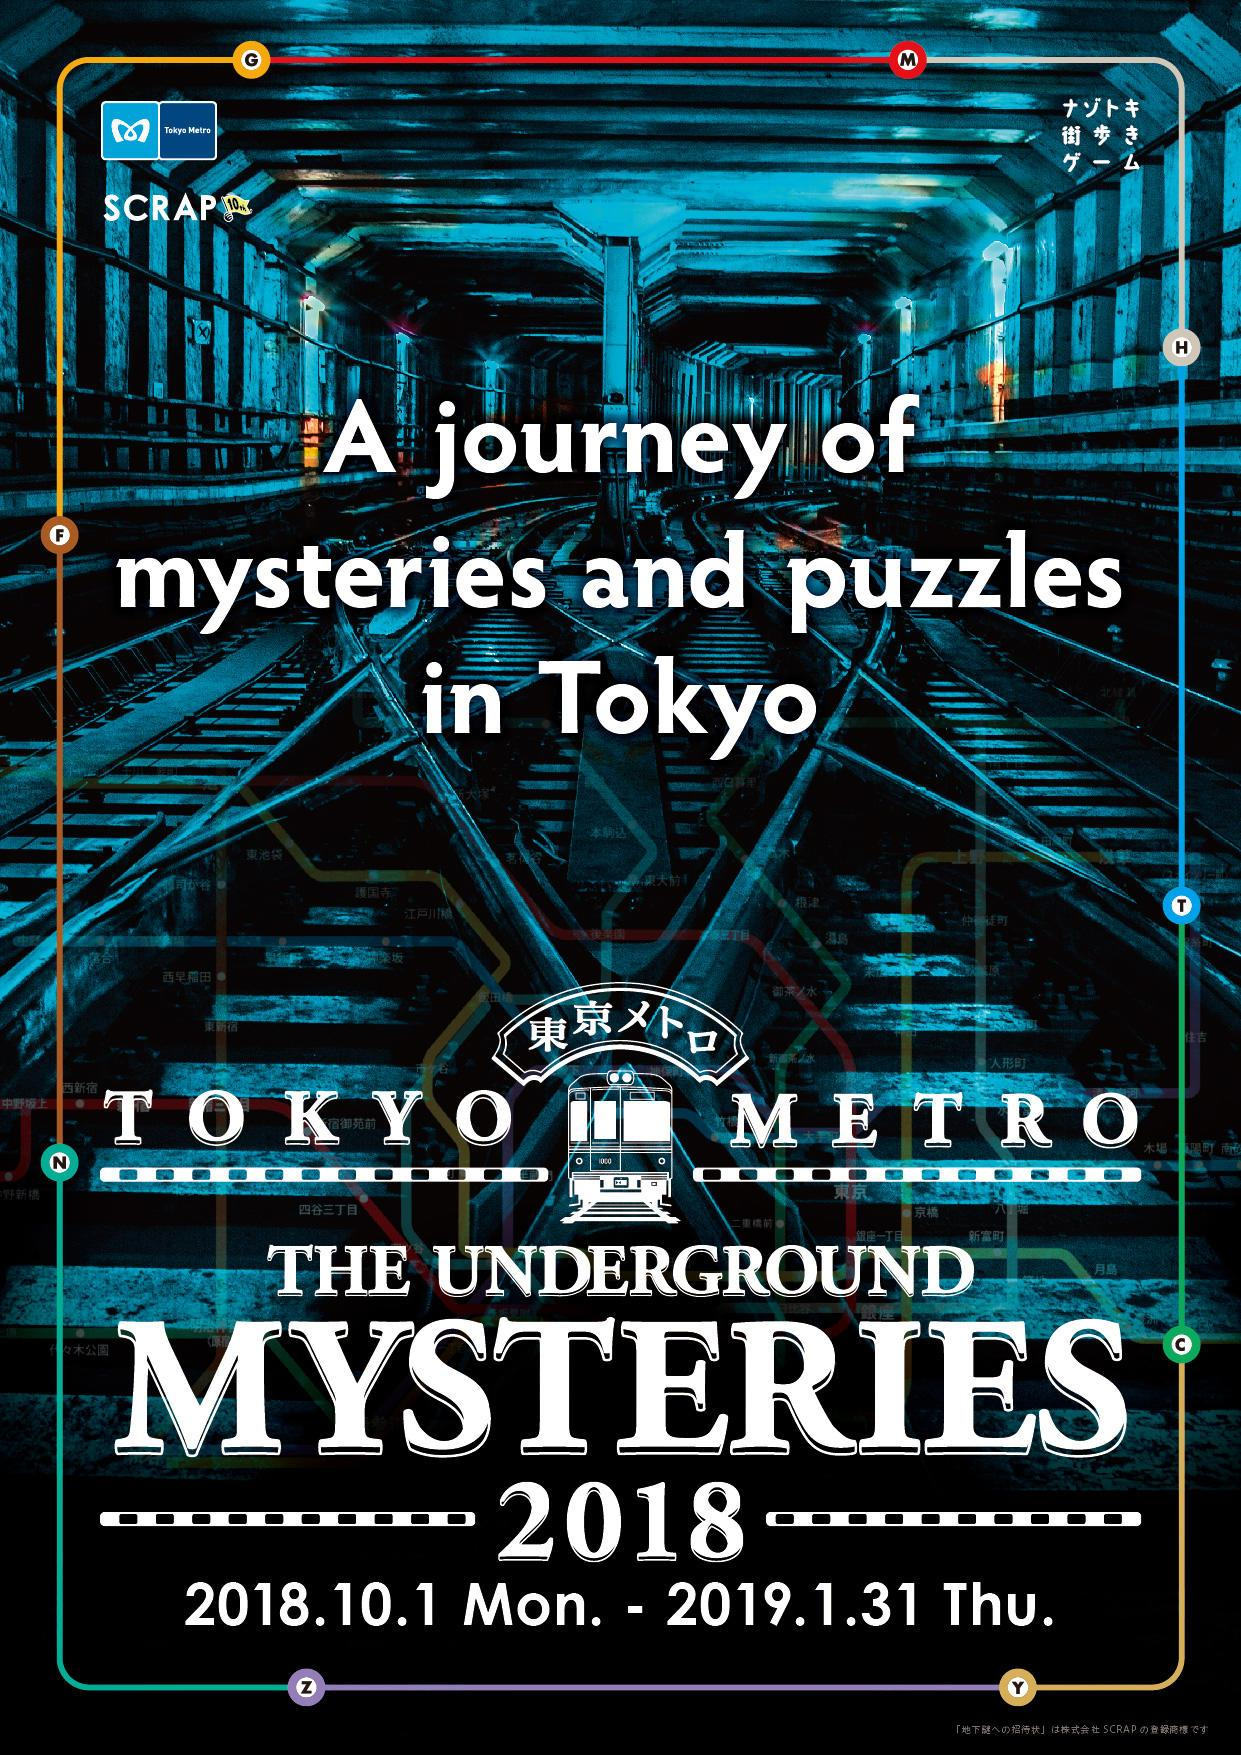 The Underground Mysteries